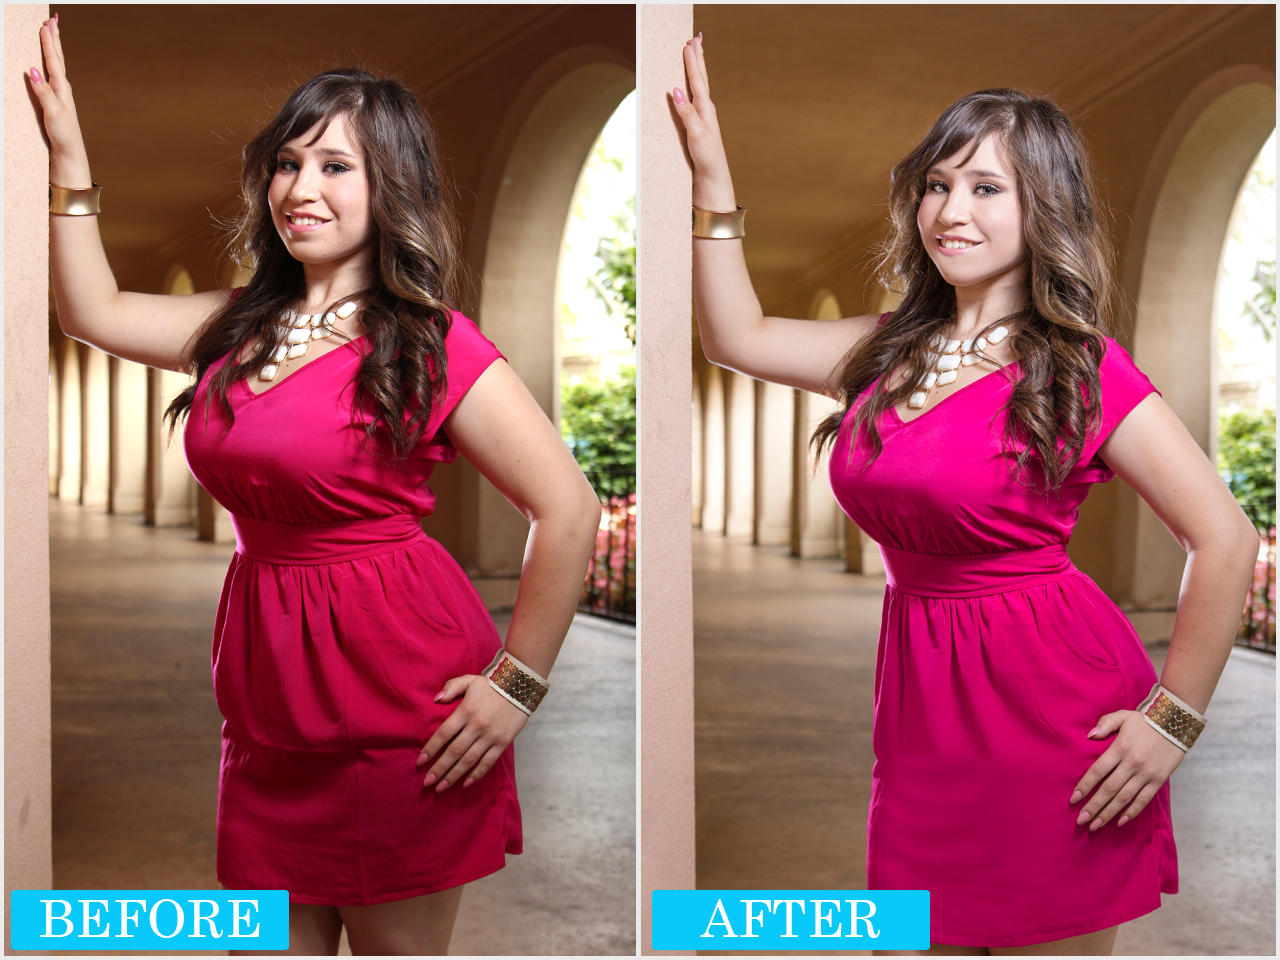 Professional High Quality Portrait Photography Retouching Service (1 Image) by sk619 - 5327